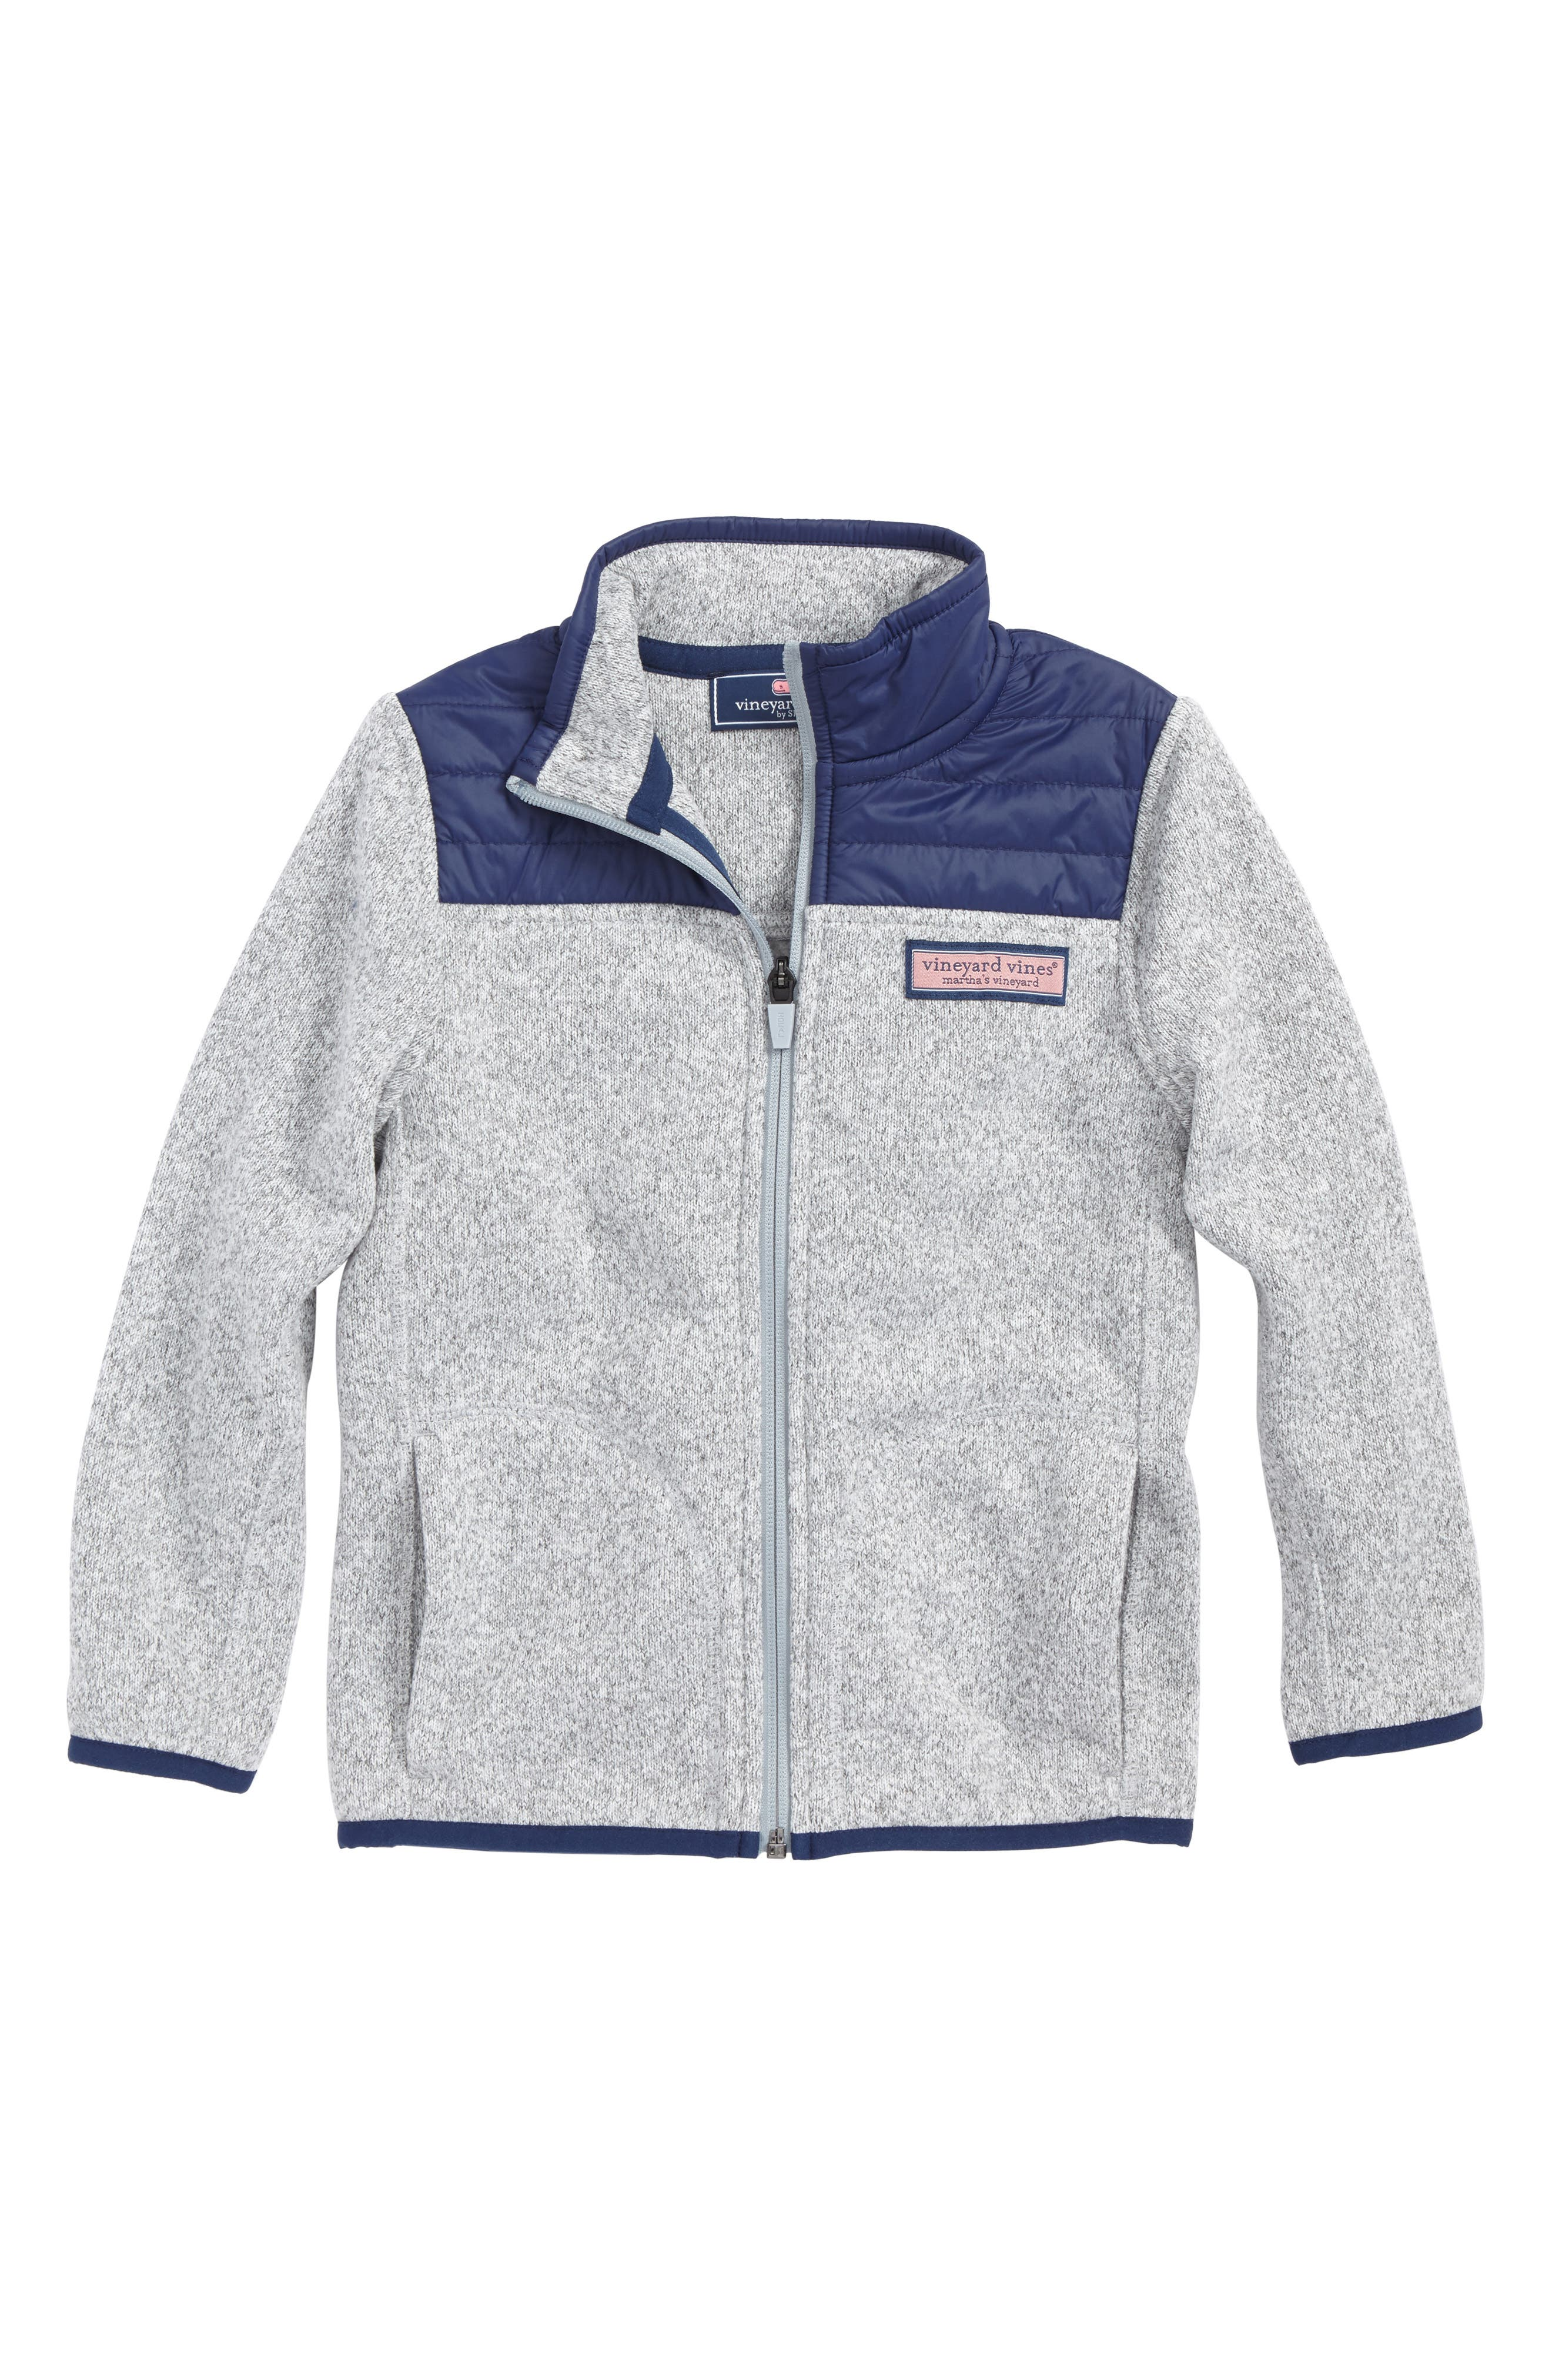 Full Zip Fleece Jacket,                             Main thumbnail 1, color,                             Gray Heather